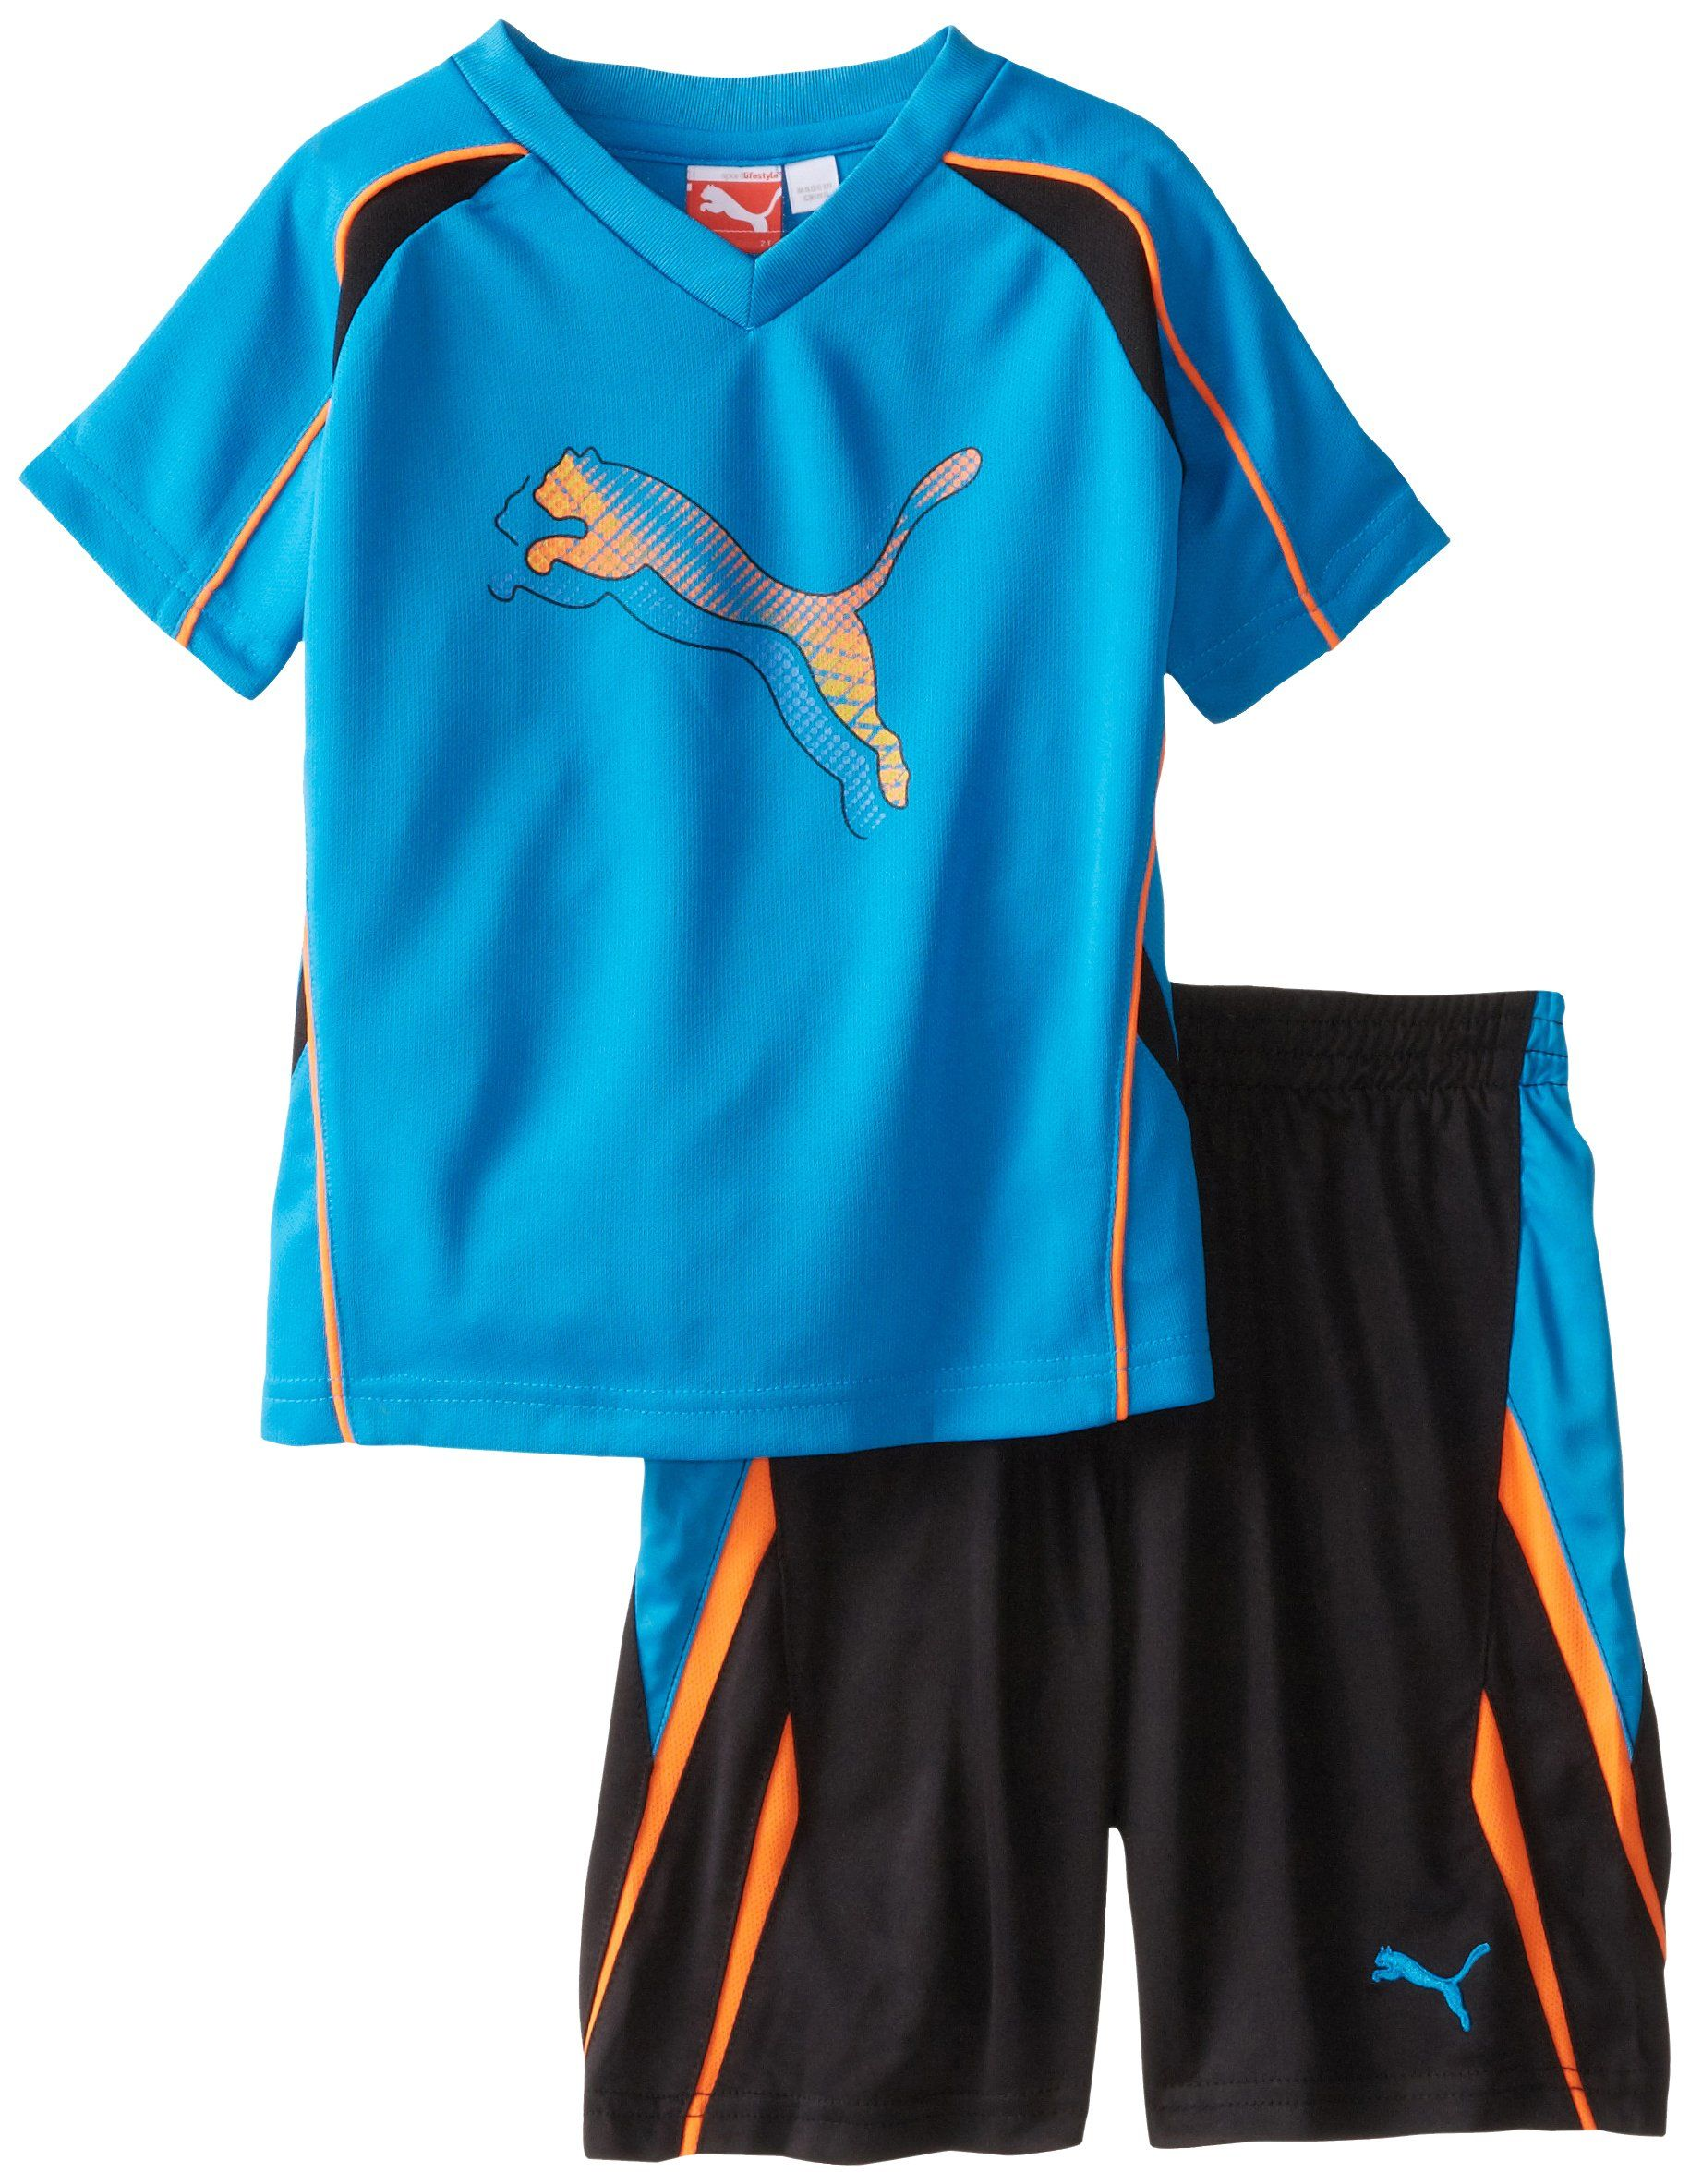 164527ea8 Boys Active Clothing Sale on Amazon Kids Sporting Goods #Deals - Over 40%  OFF